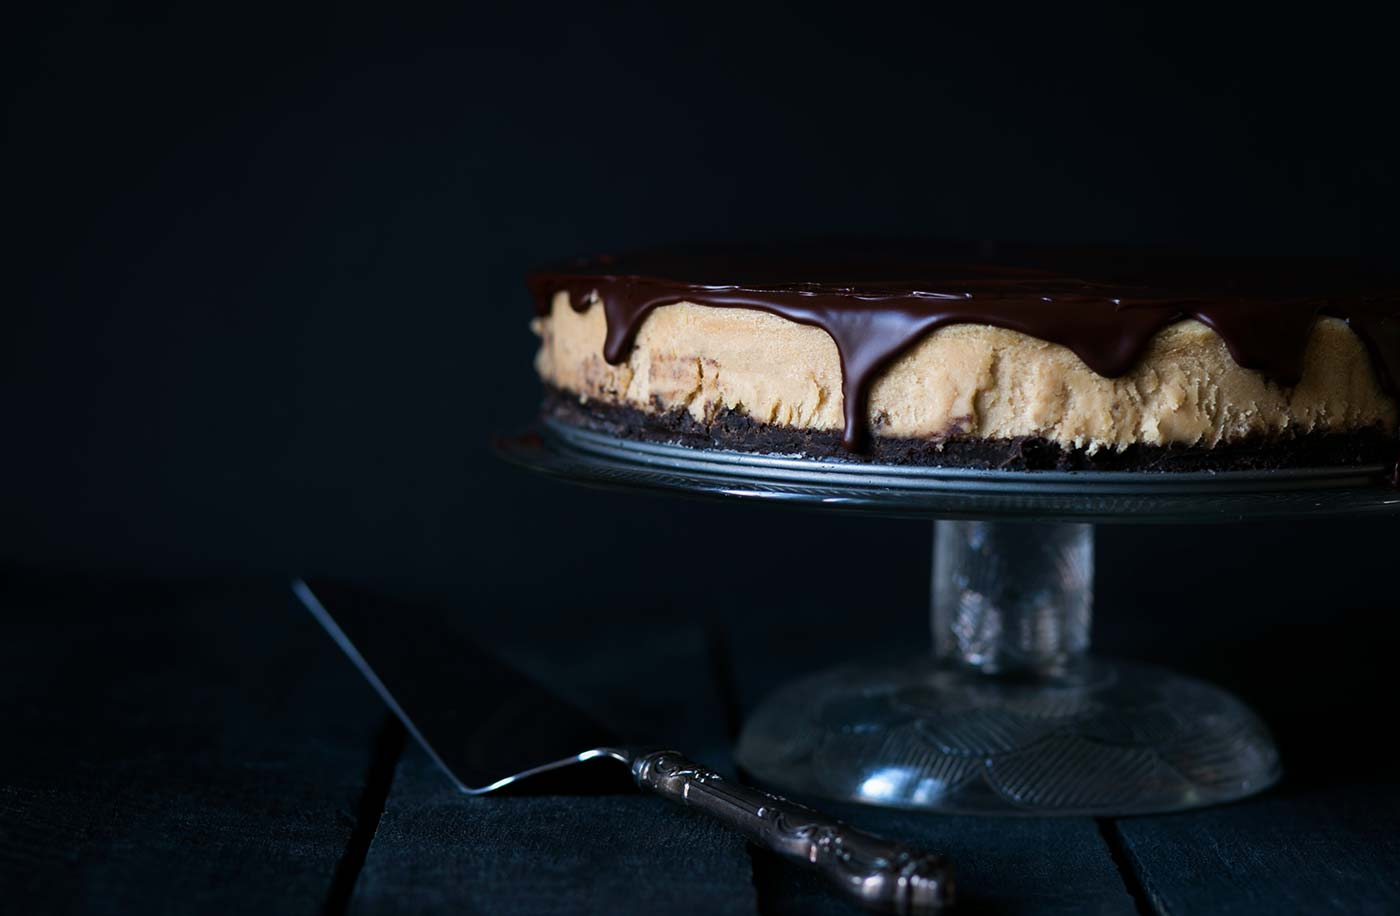 This decadent Chocolate Peanut Butter Cheesecake has a chocolate graham cracker crust, a light and fluffy peanut butter filling, and is topped with a bittersweet chocolate ganache. Get the recipe from SavorySimple.net